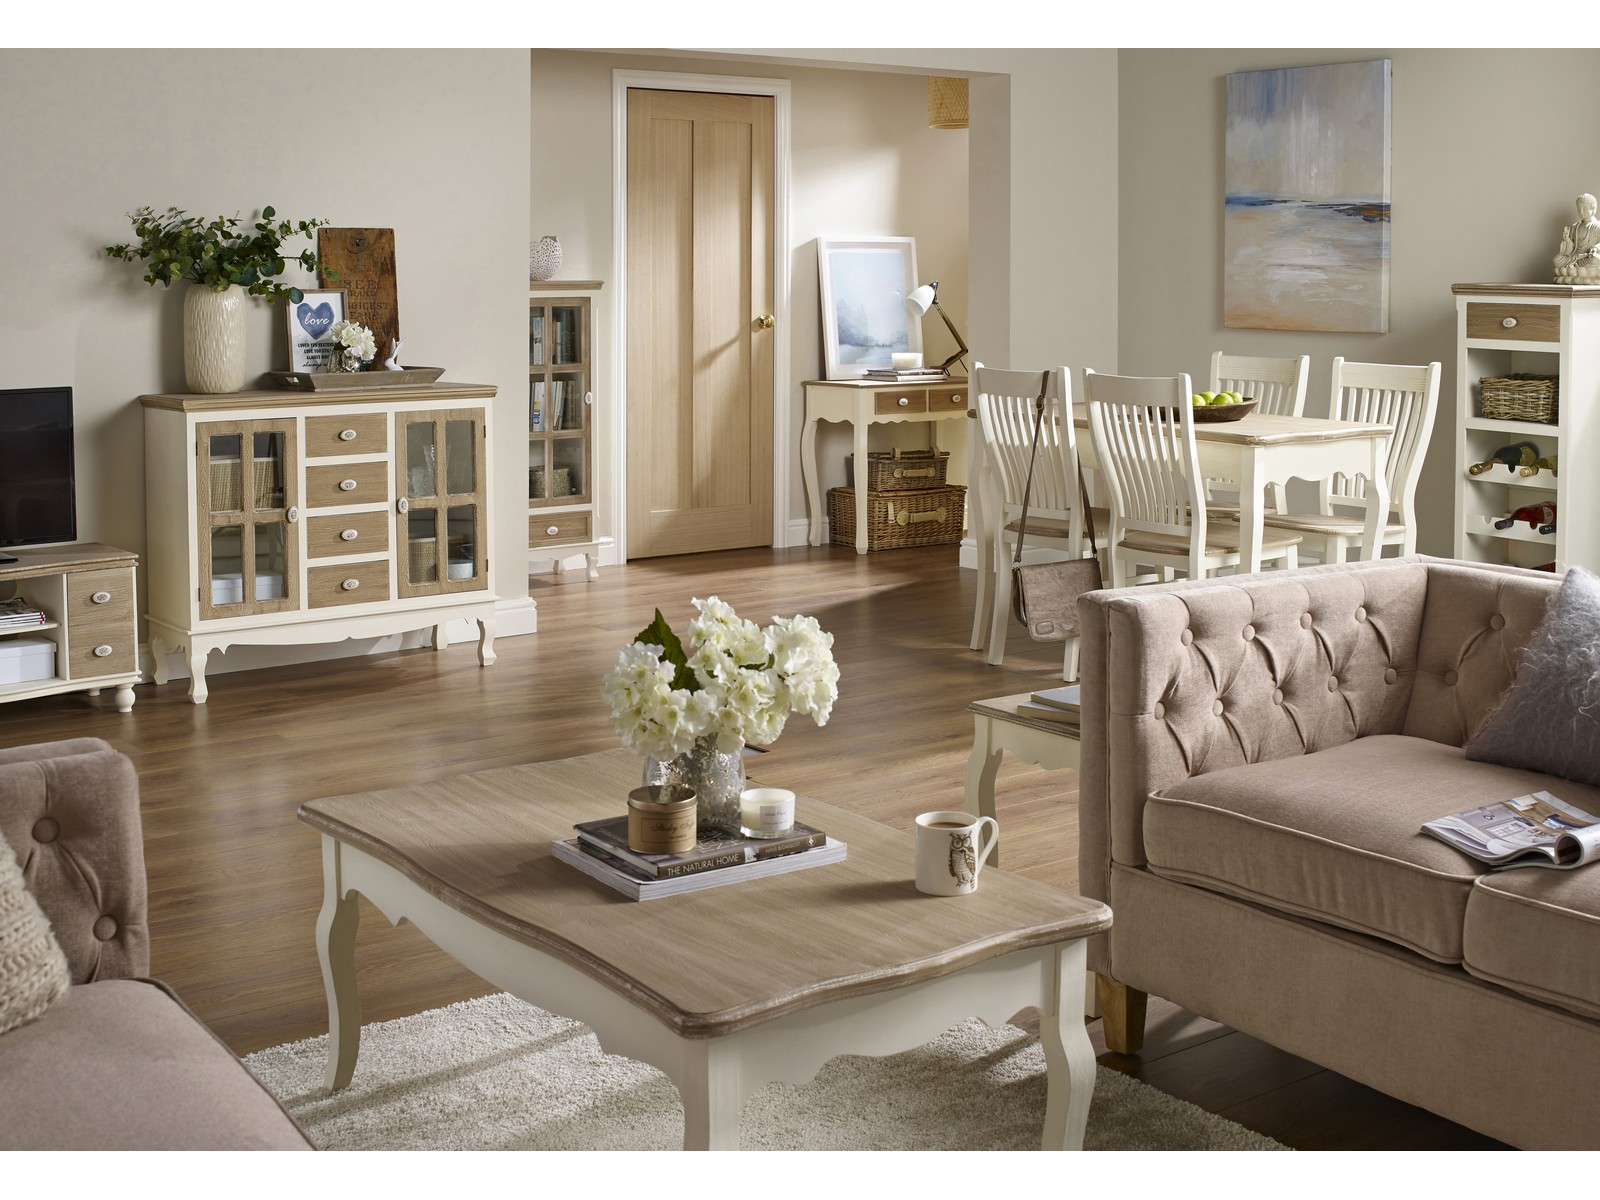 Details about Juliette Cream & Pine Living Room Furniture -Tables Storage  Cabinets Chairs